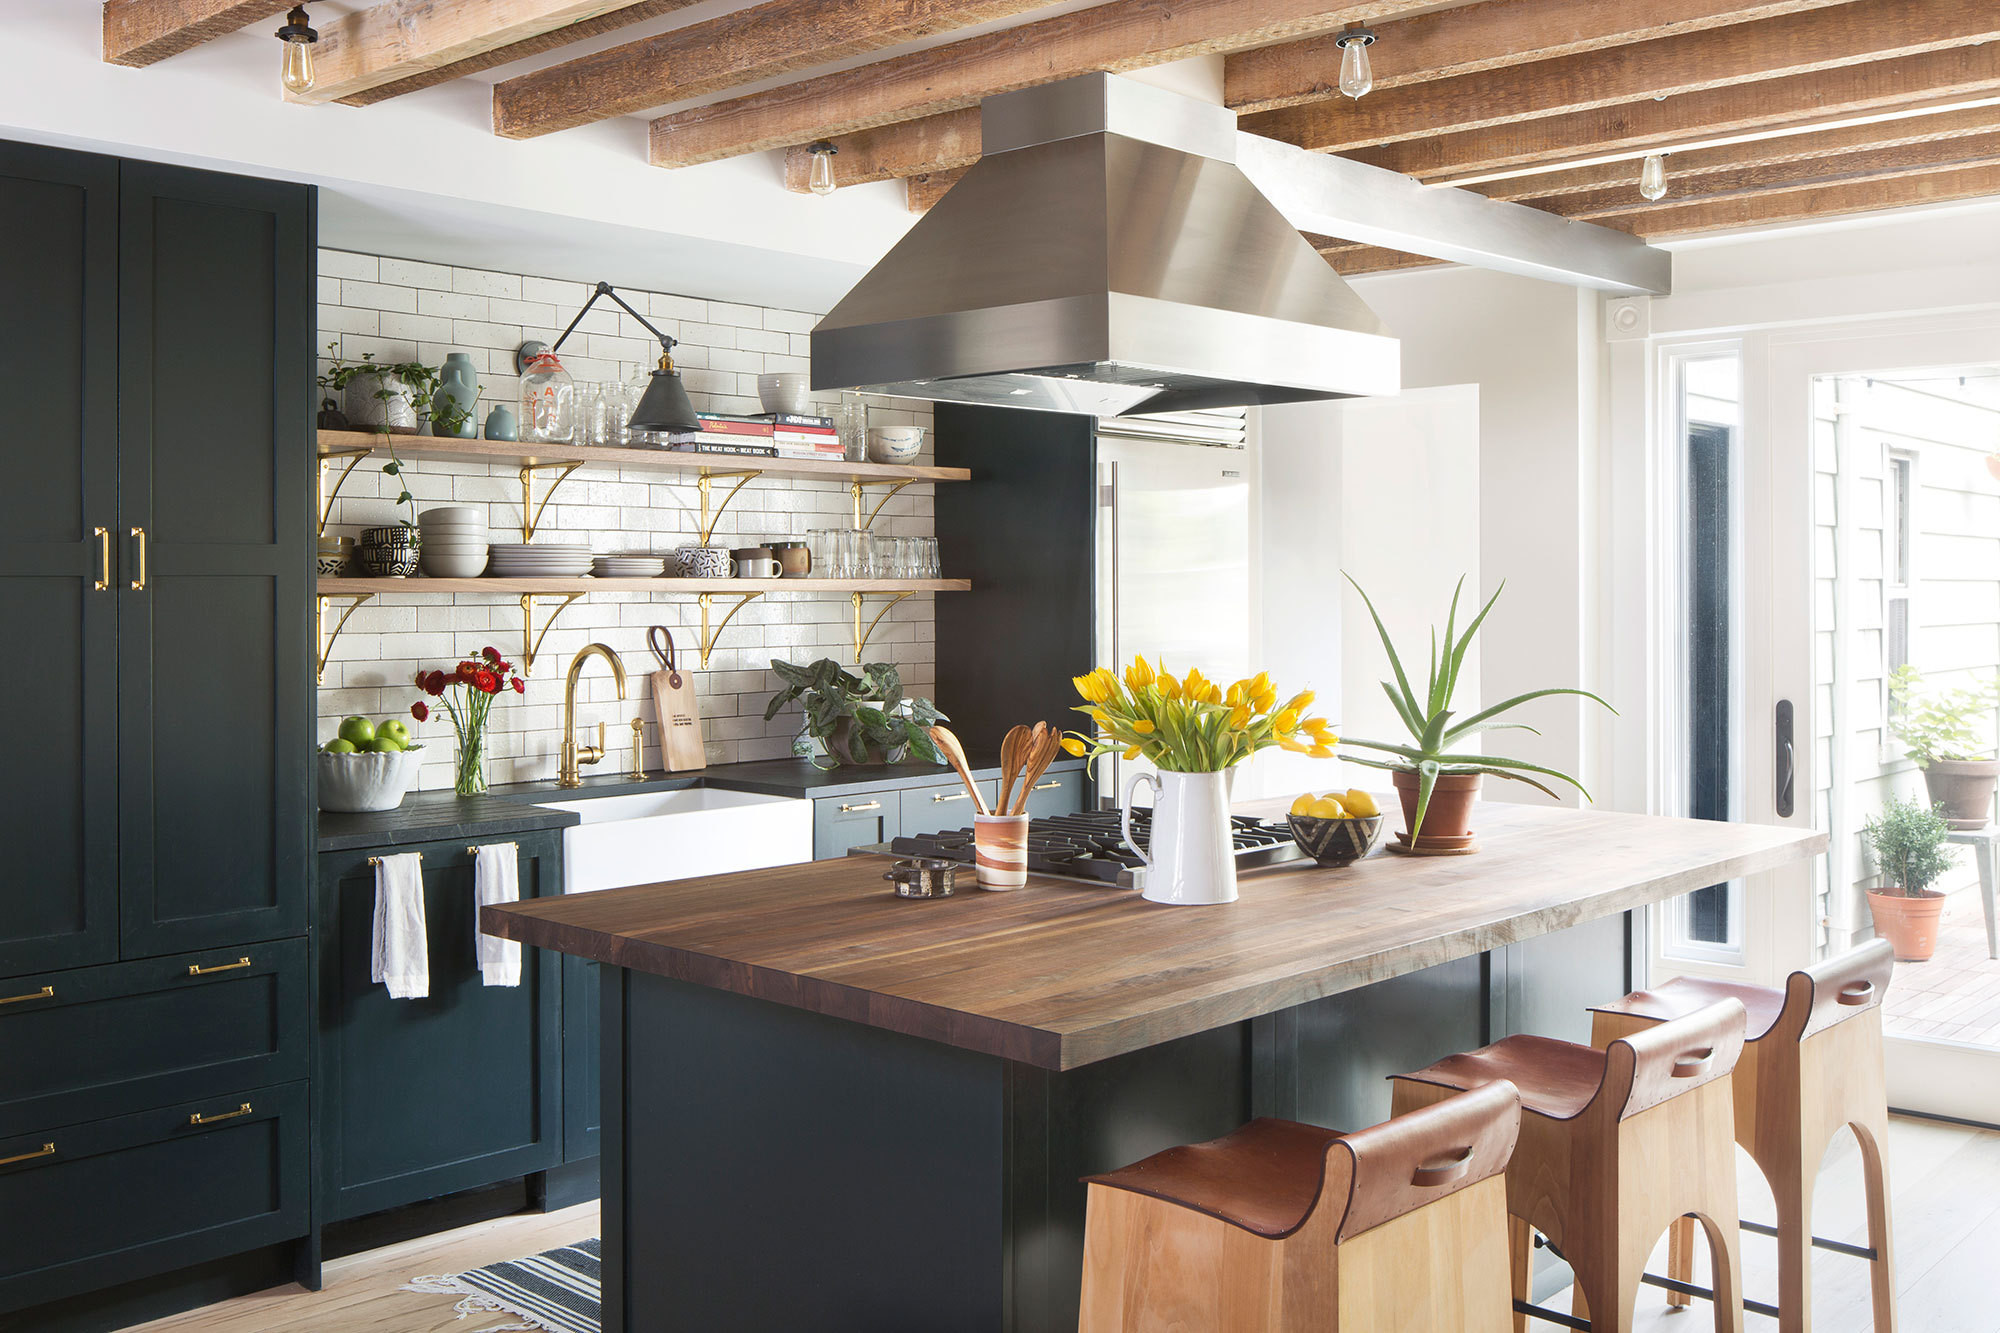 Designer Alison Jennison's townhouse kitchen makes a high-contrast statement with cabinetry in Benjamin Moore's Dark Knight set against crisp subway tile and gleaming metallic accents.